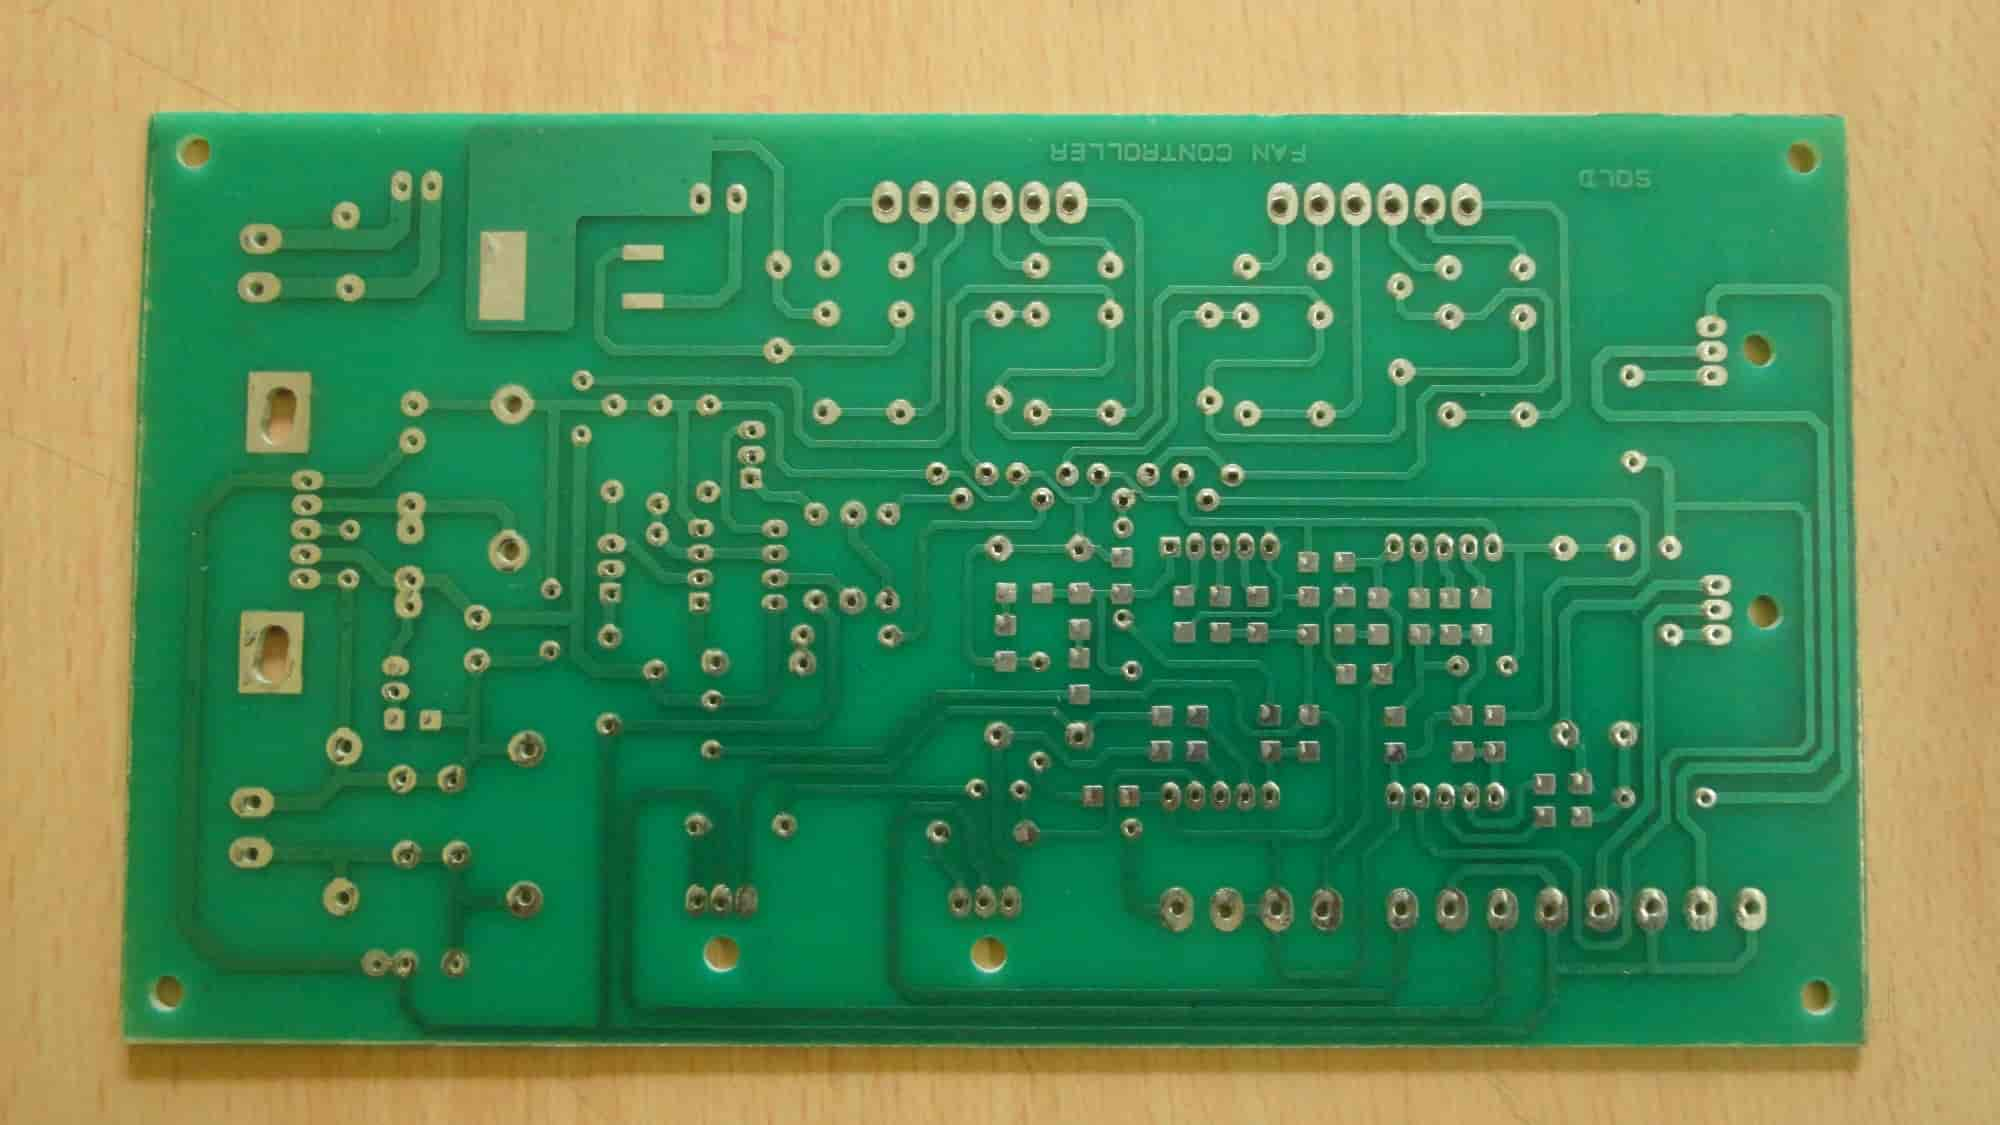 Bright Teck Power Systems, Tirusulam - Printed Circuit Board